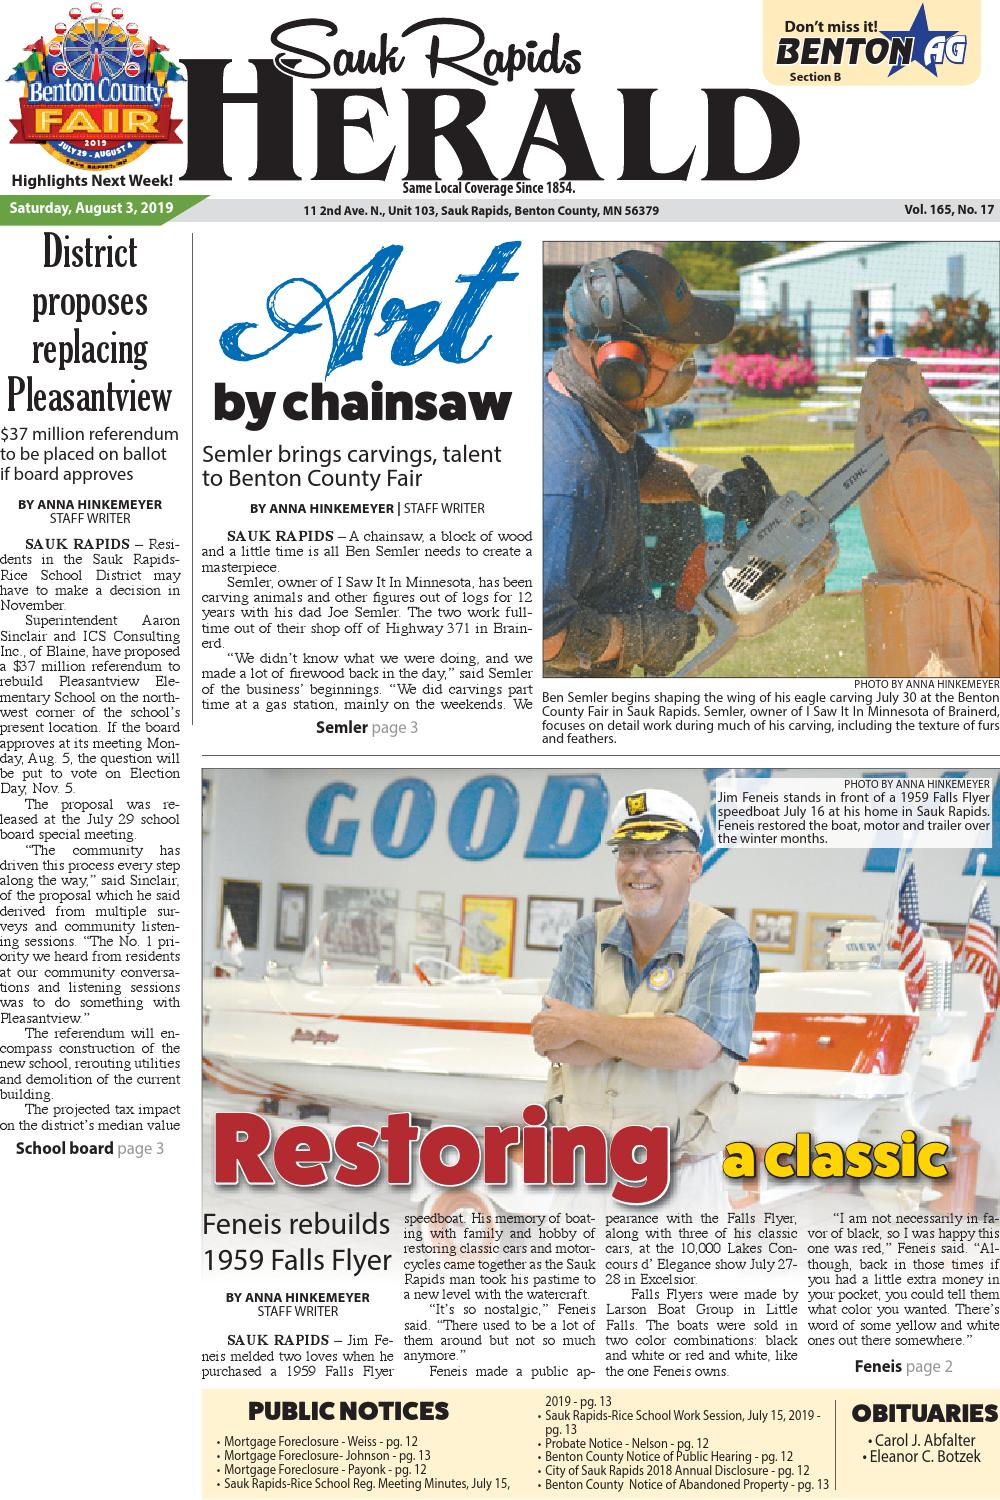 Sauk Rapids Herald - August 3 edition by Star Publications